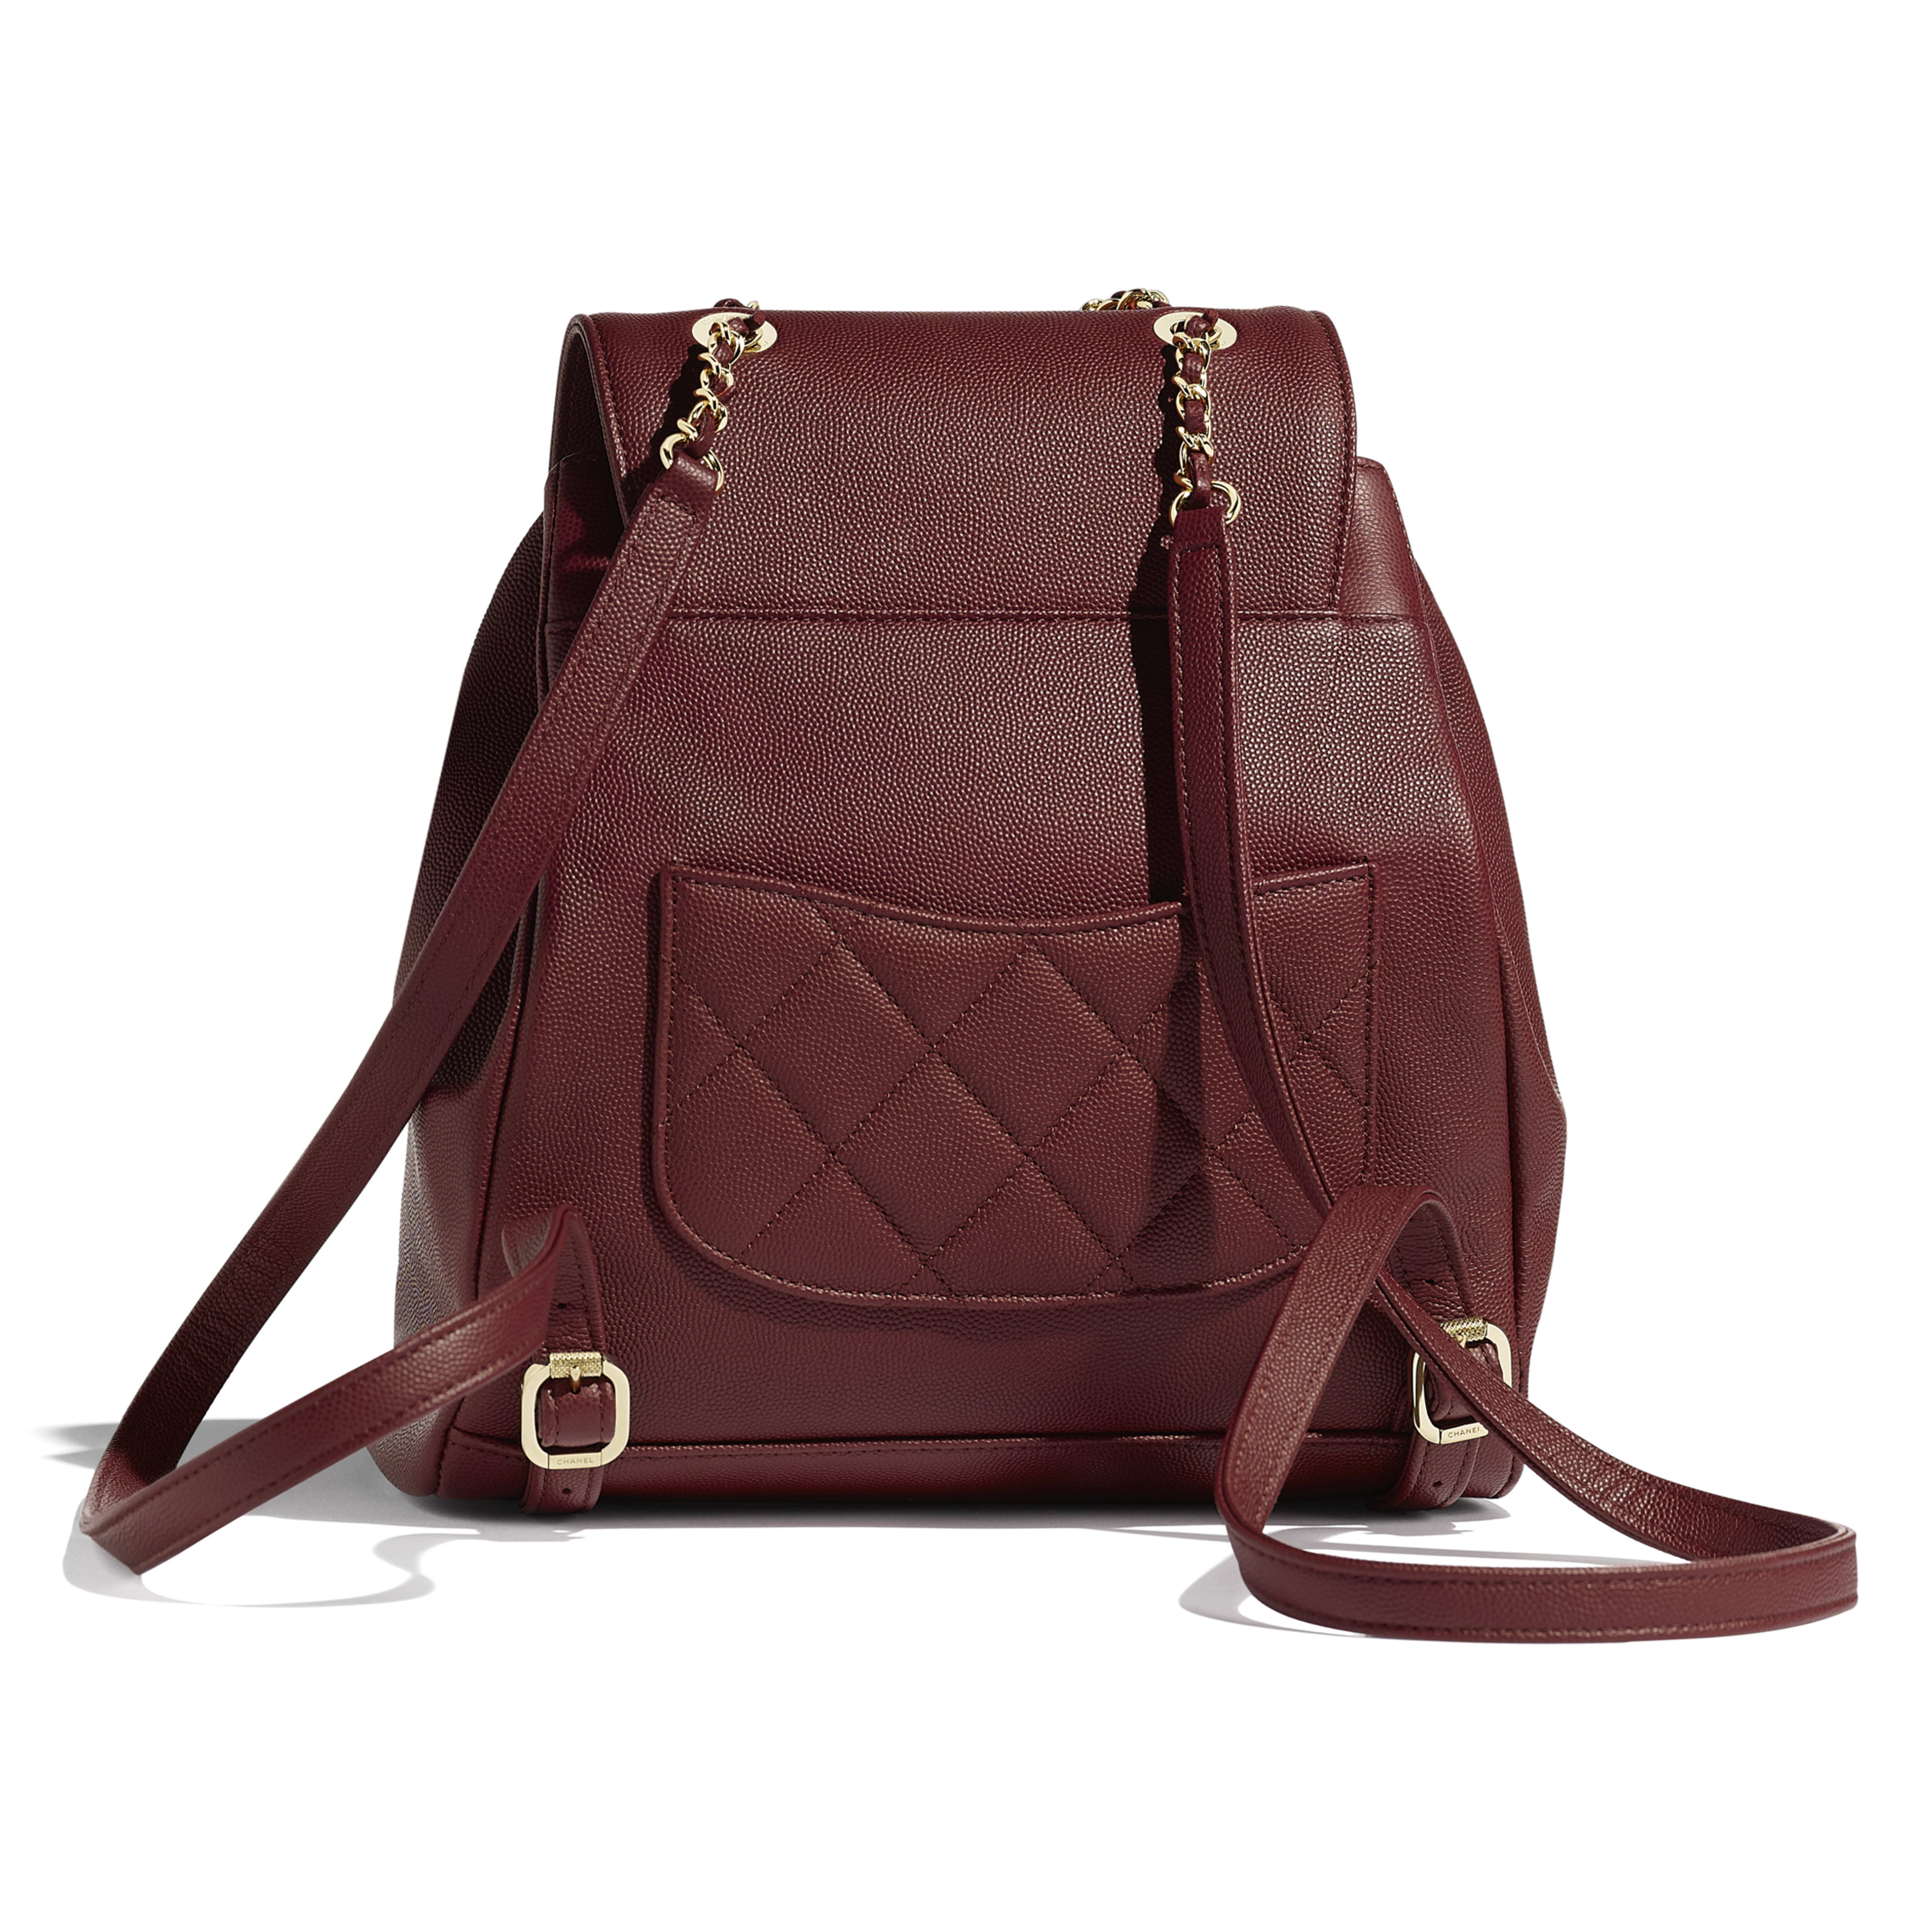 Backpack - Burgundy - Grained Calfskin & Gold-Tone Metal - Alternative view - see full sized version